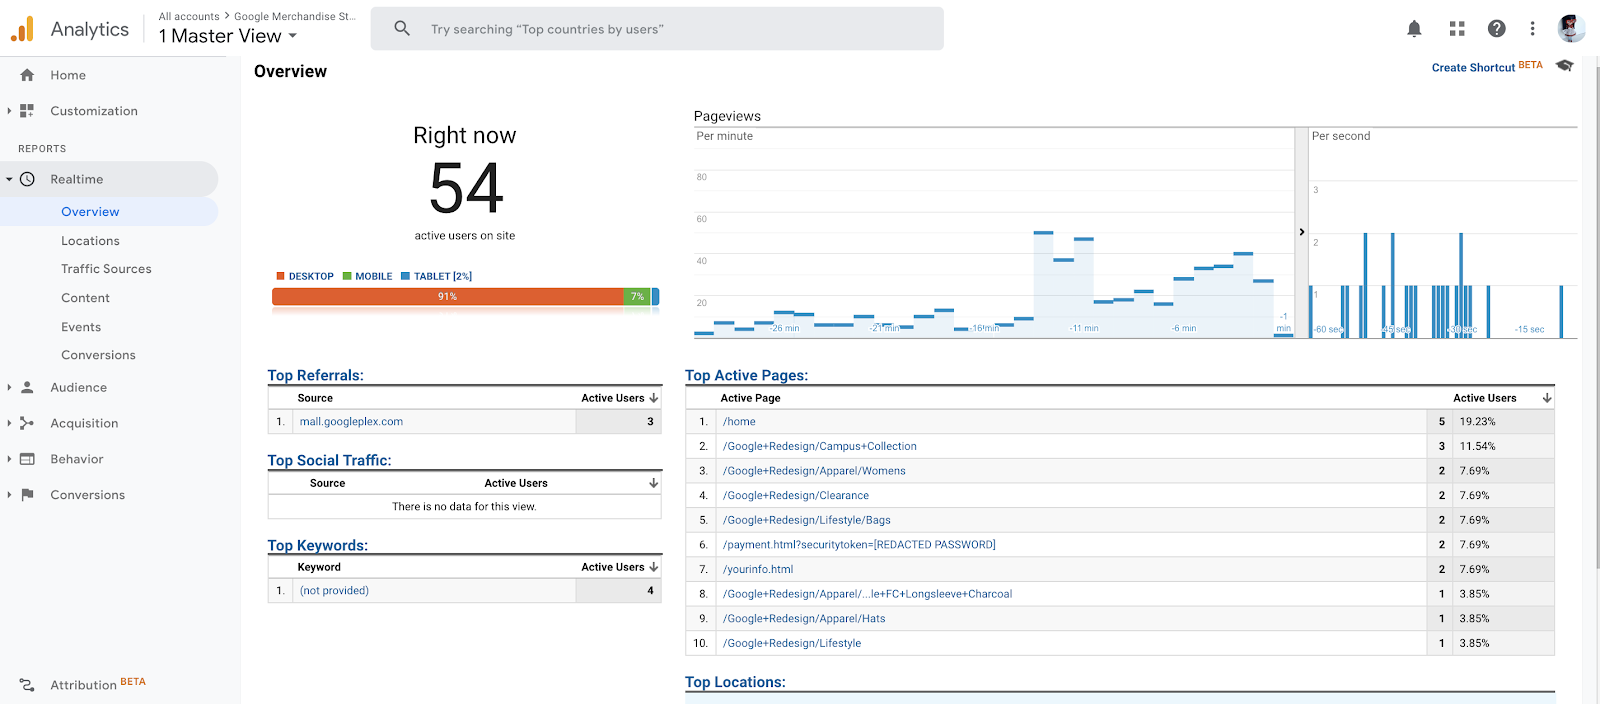 See what actions users are taking on your site